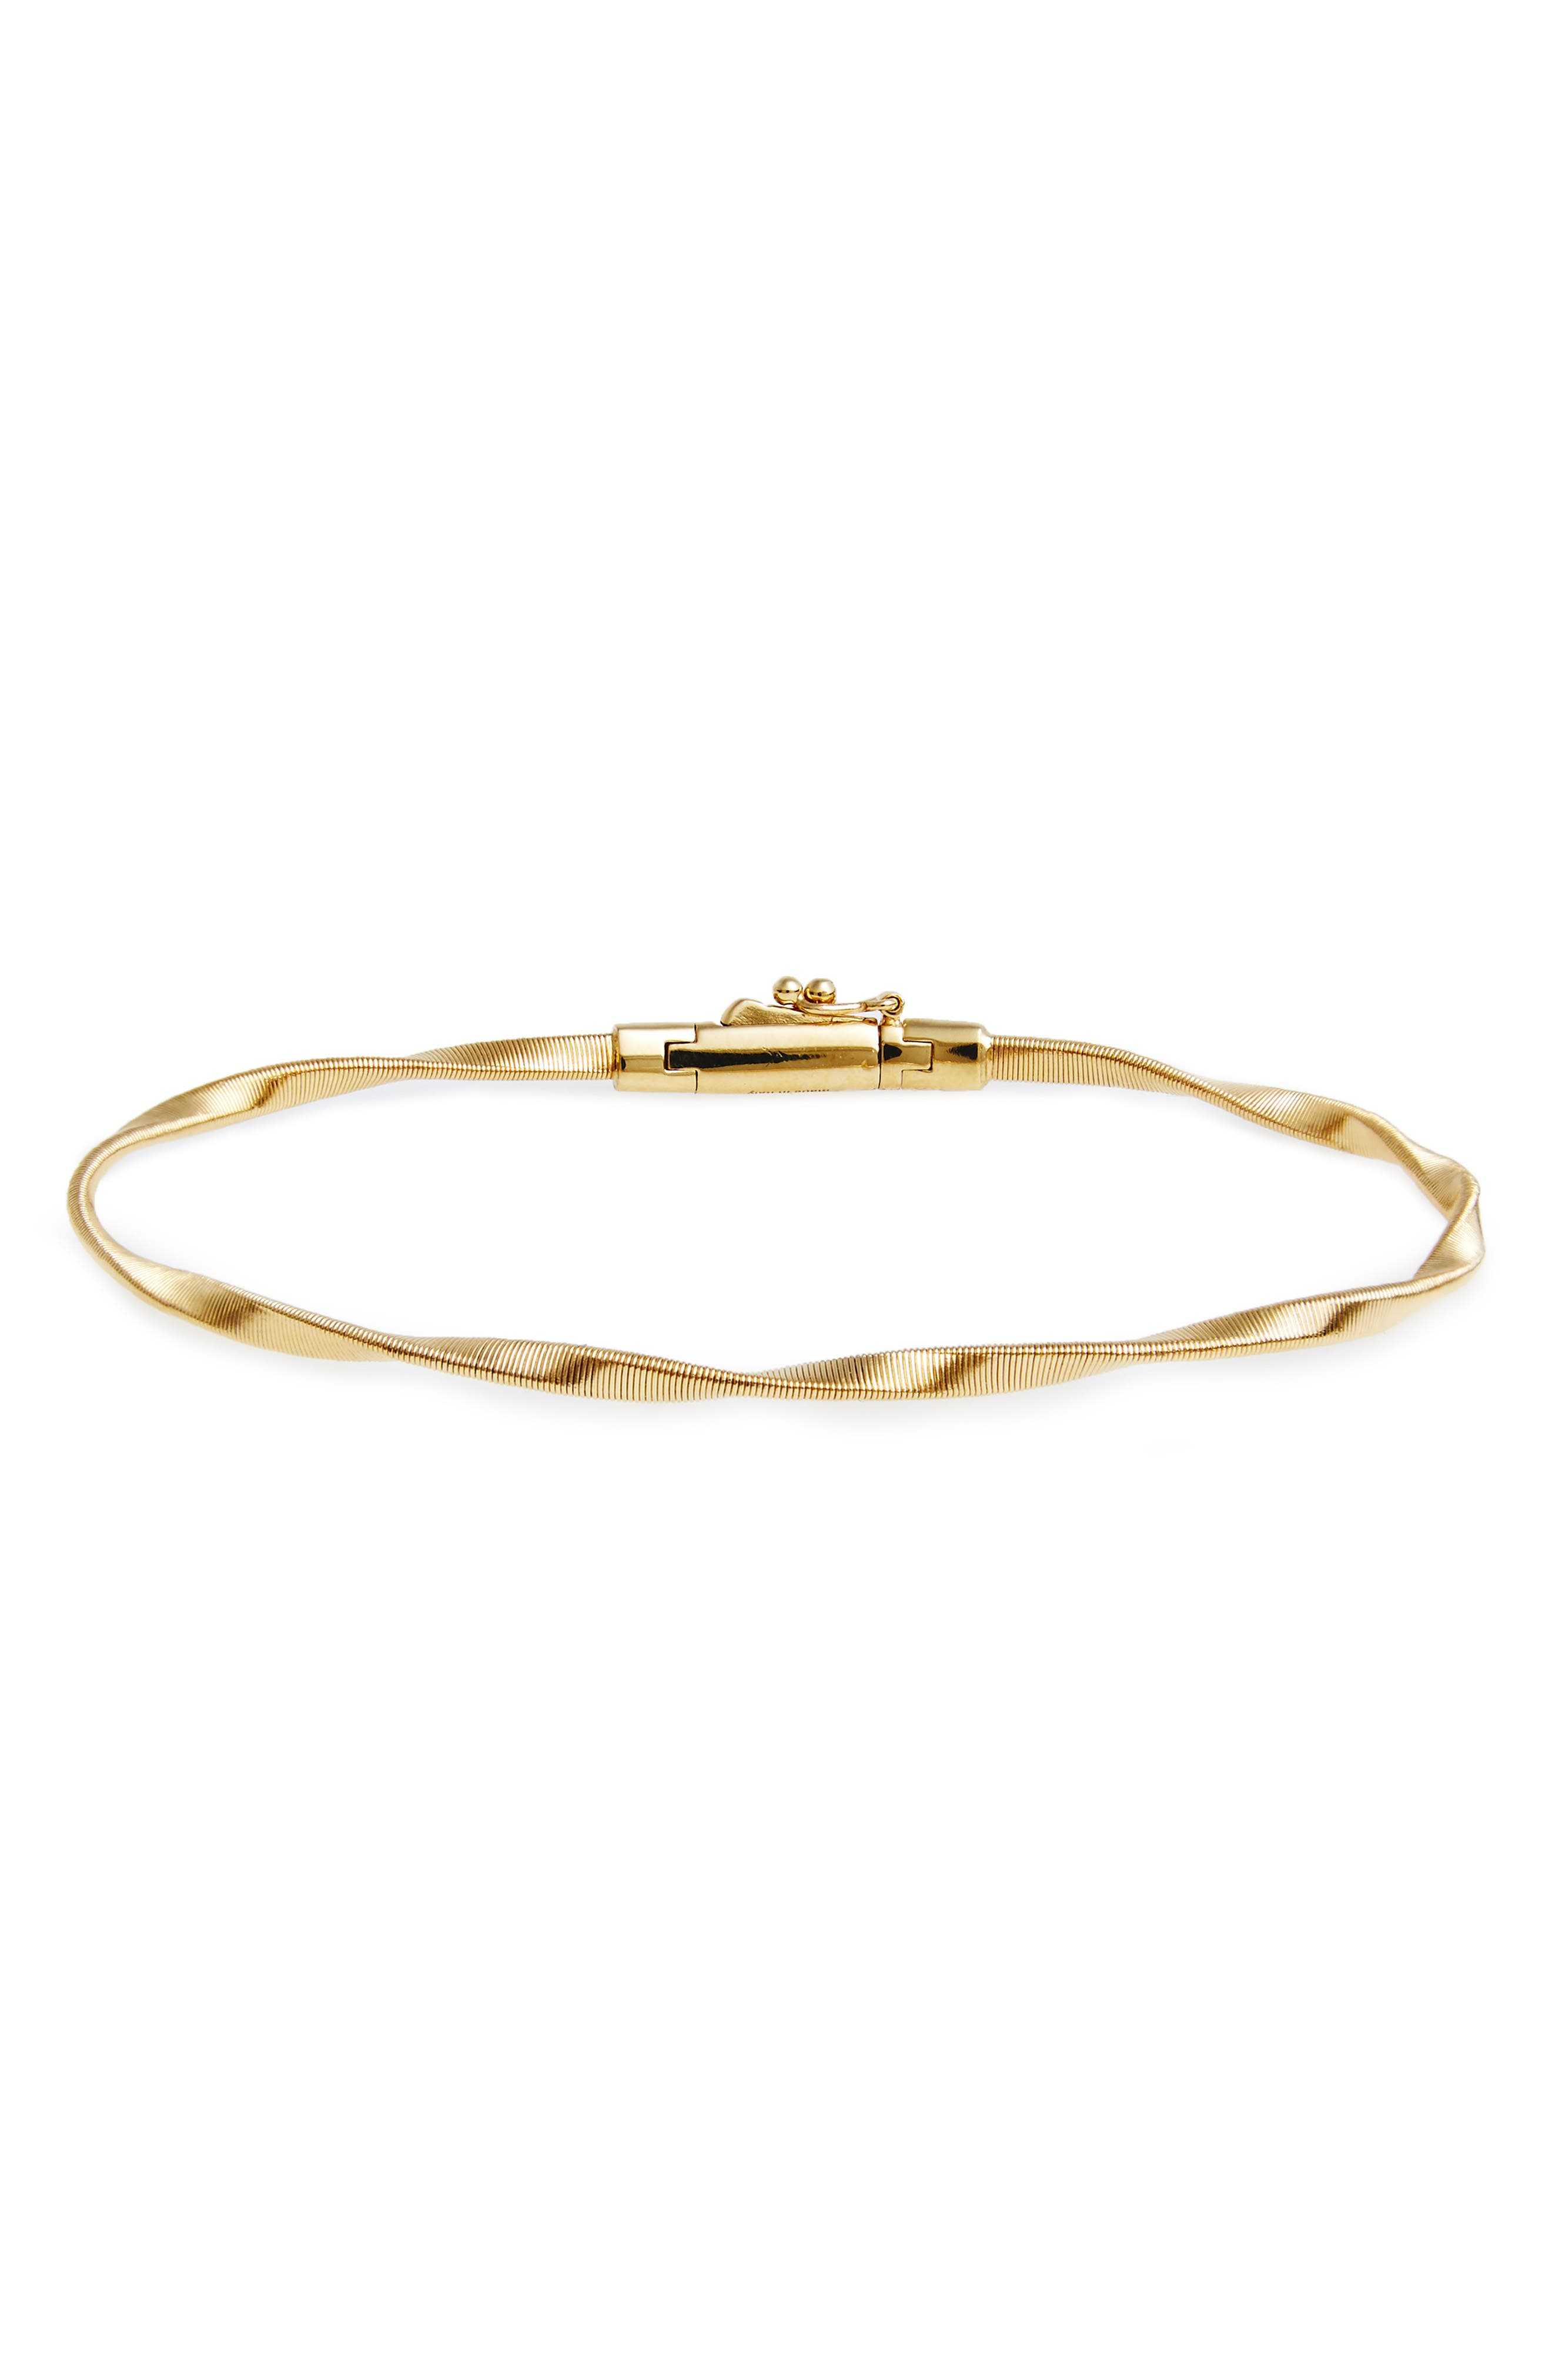 'Marrakech' Single Strand Bracelet,                         Main,                         color, YELLOW GOLD